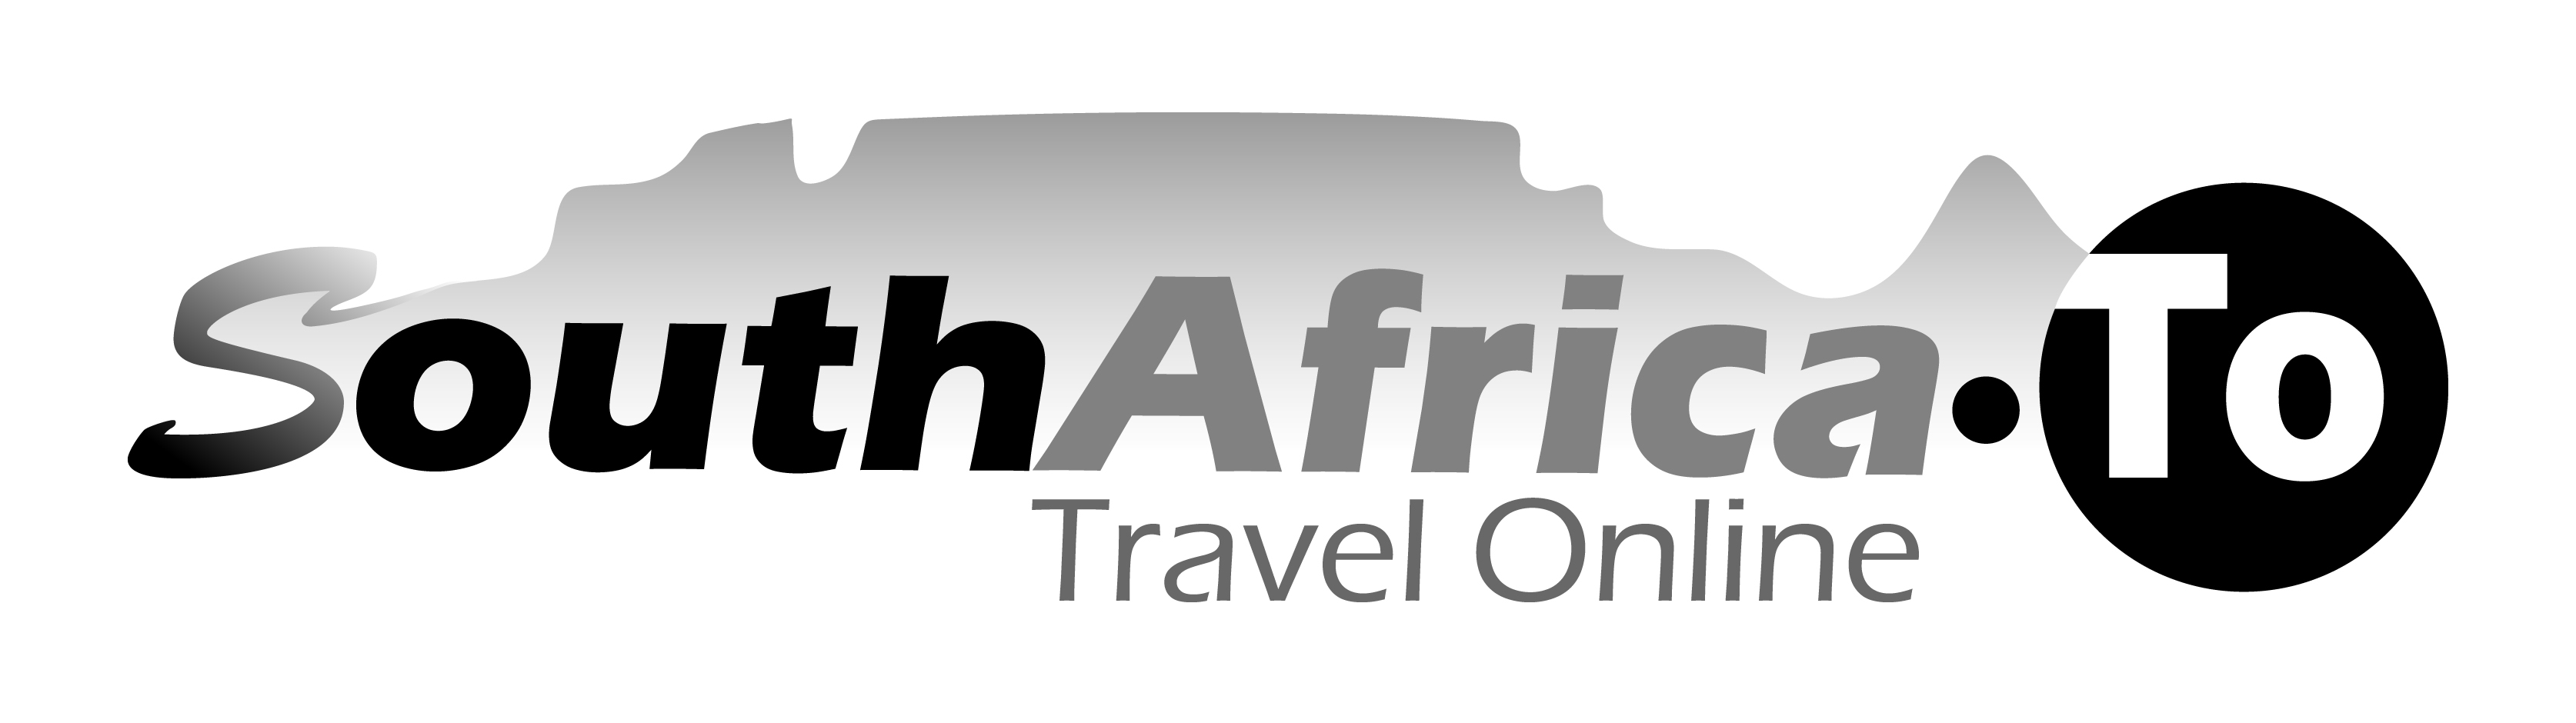 SouthAfrica.TO logo